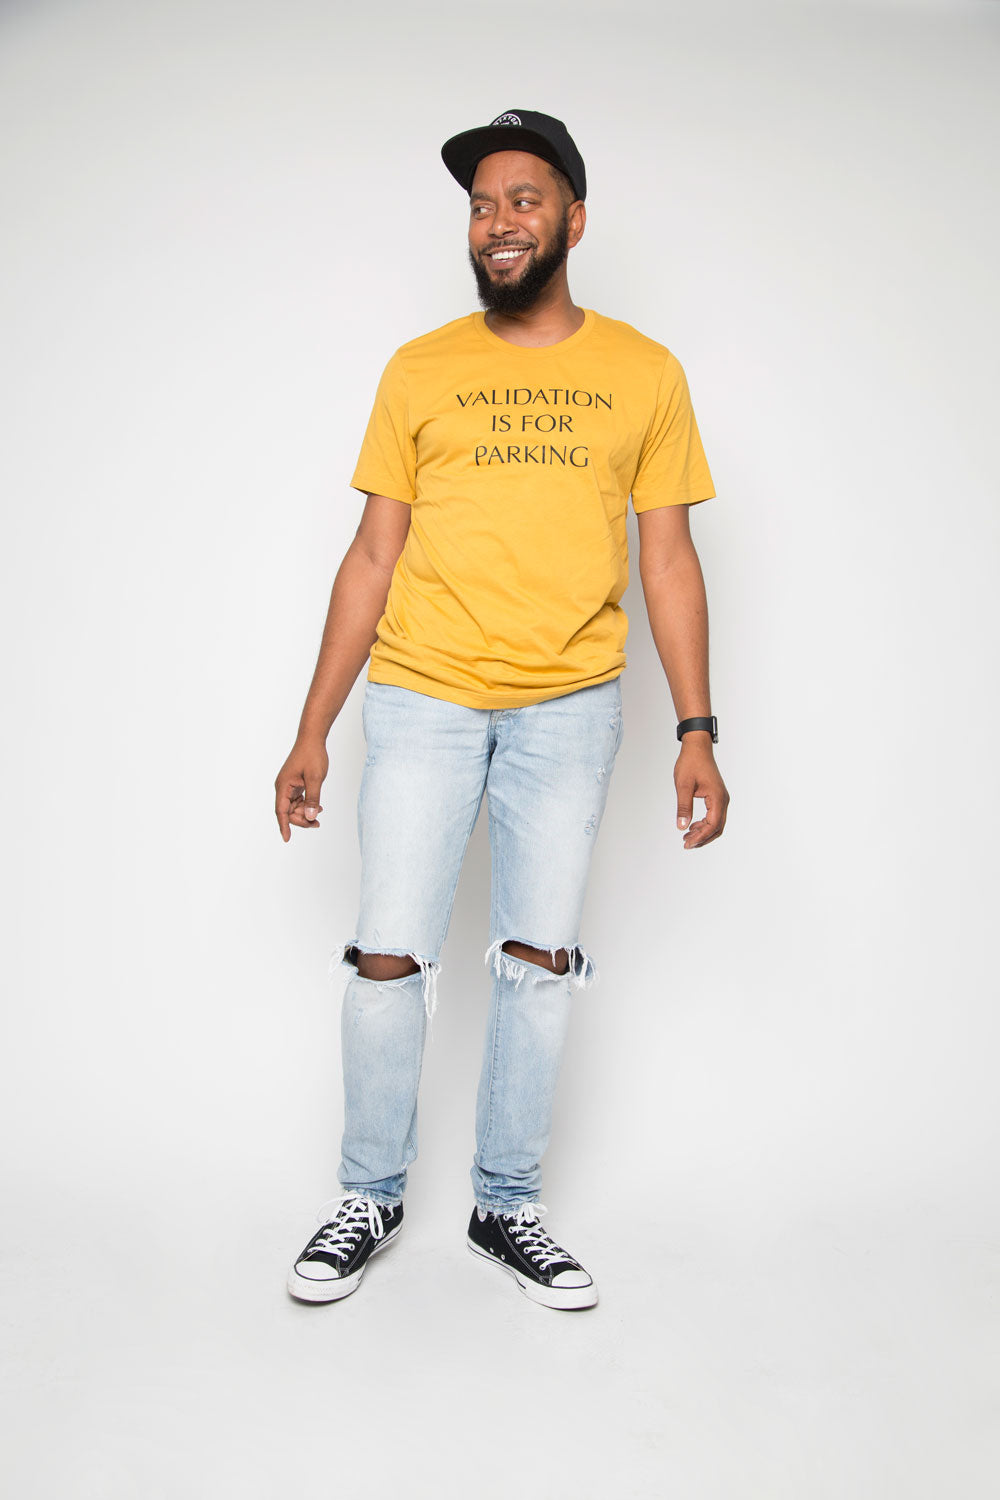 Validation Is For Parking Shirt in Mustard - Trunk Series, LLC